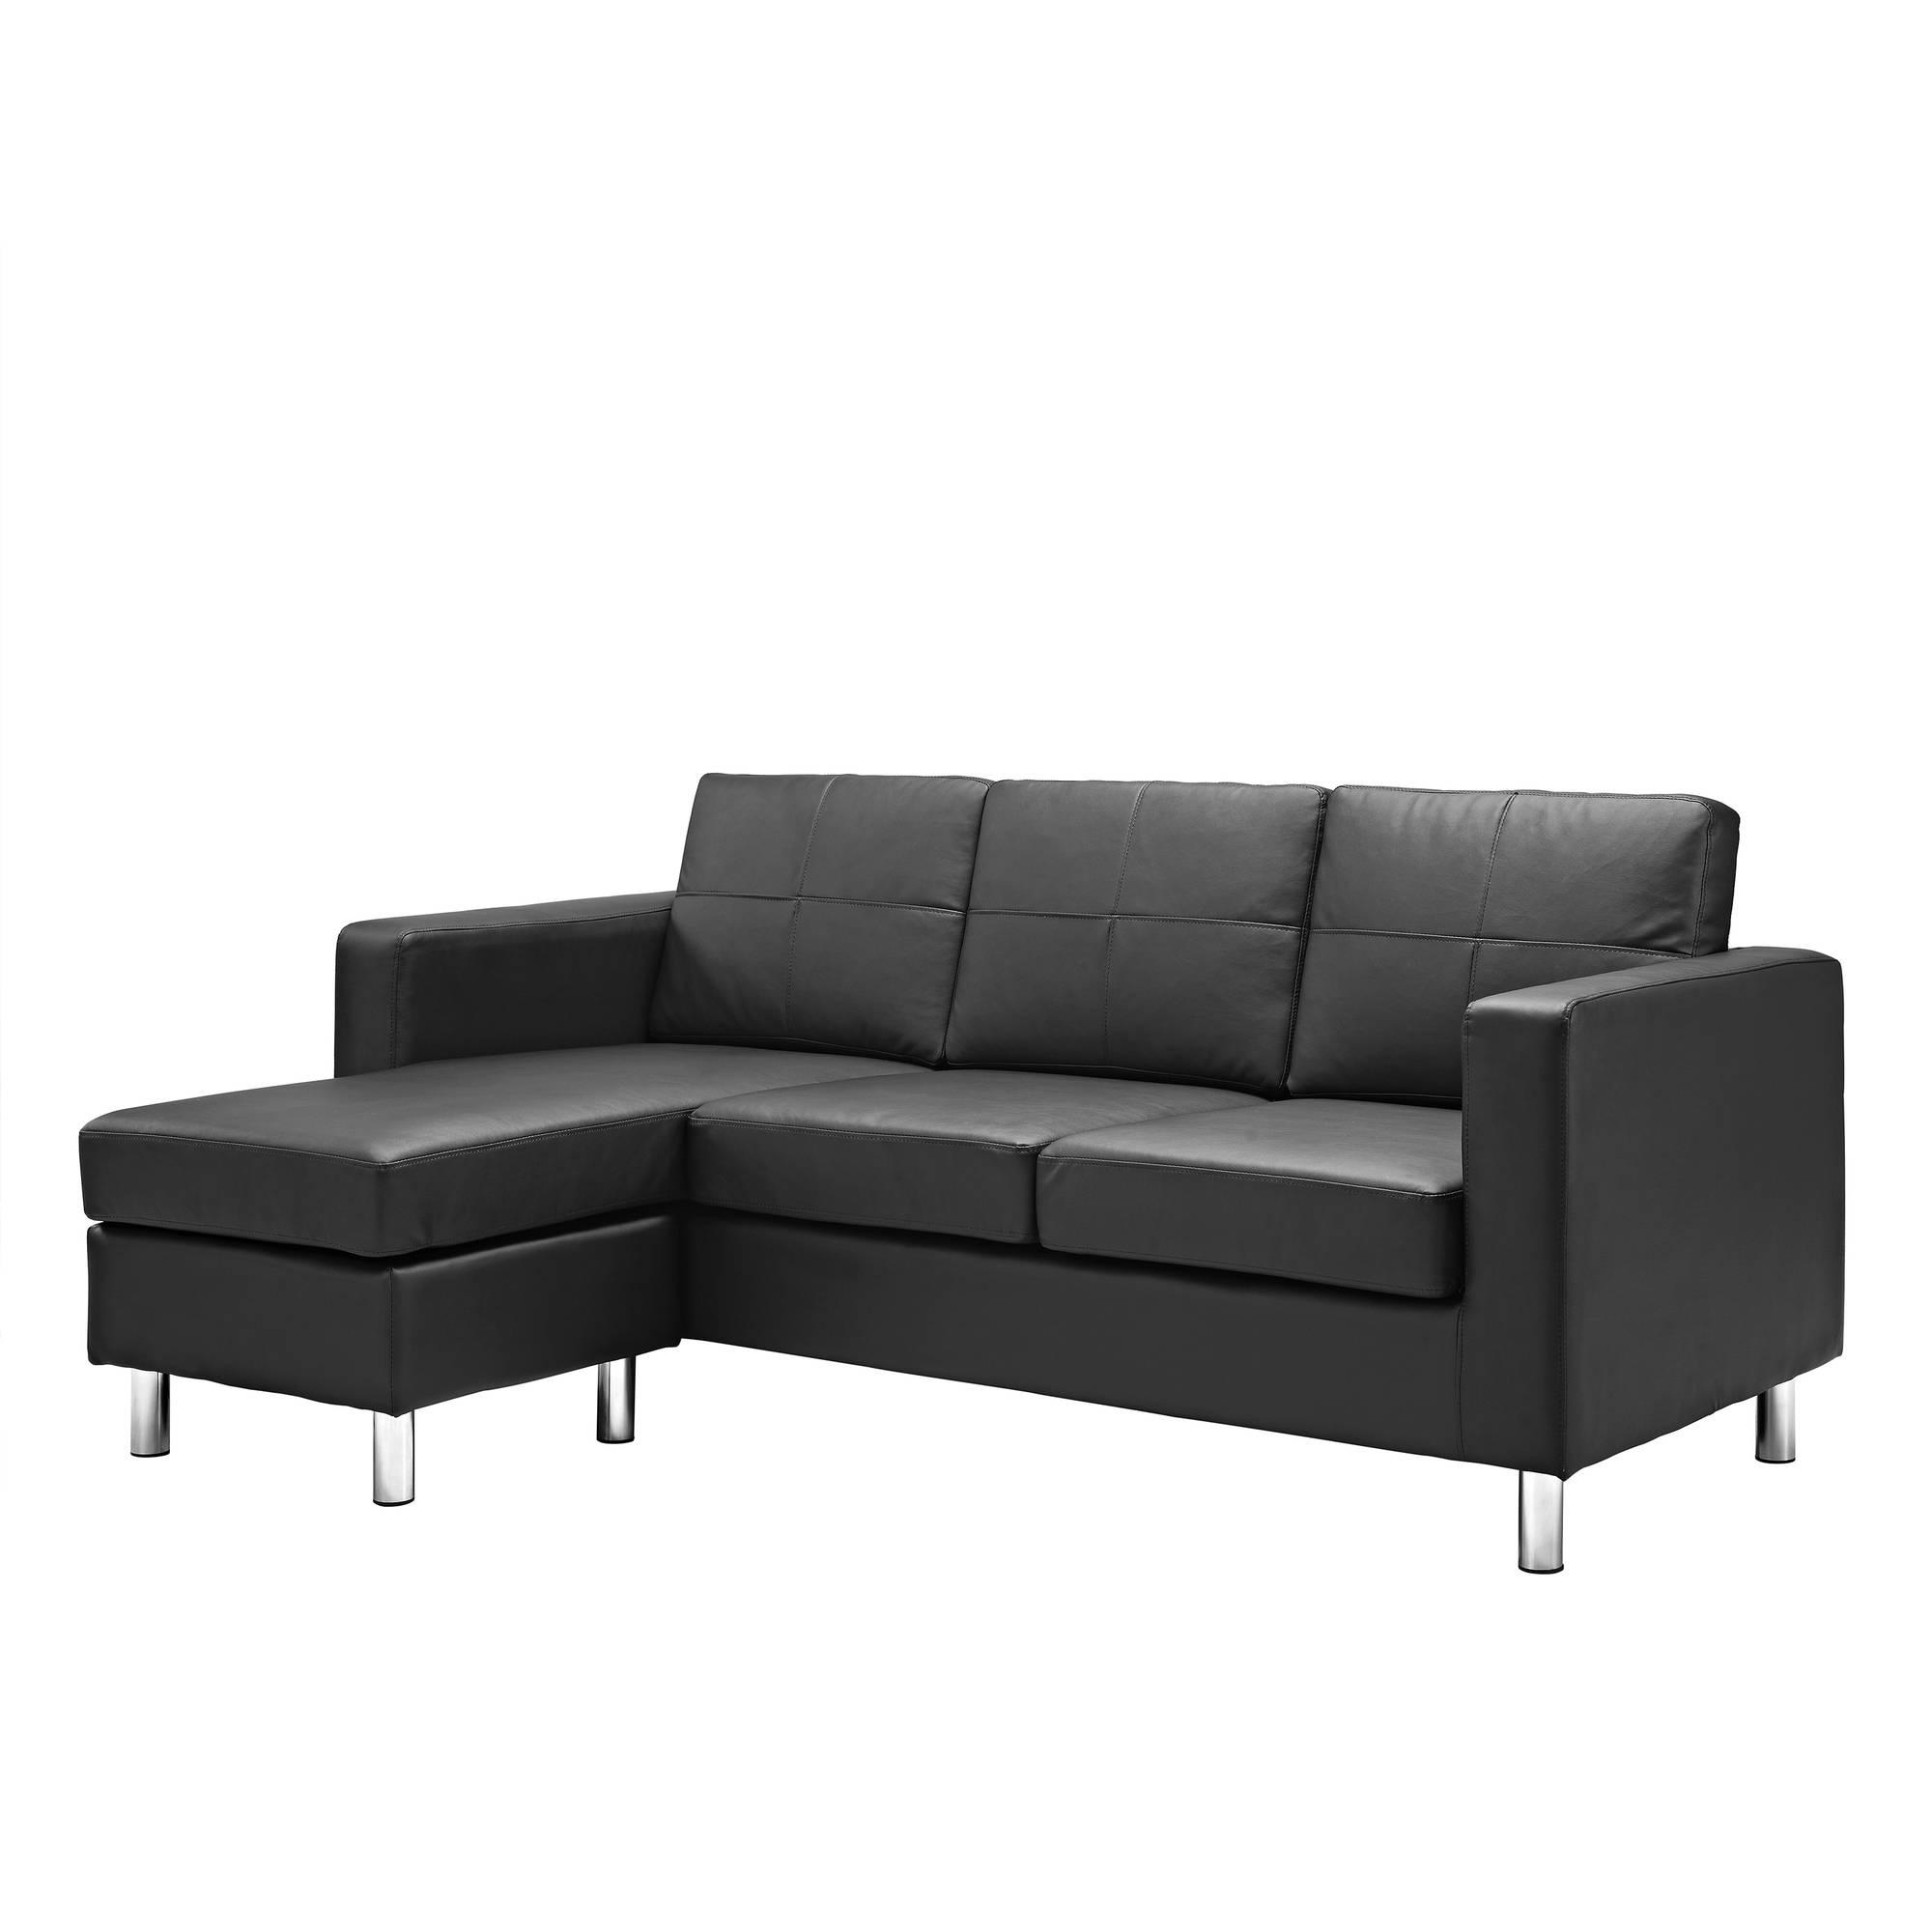 Dorel Living Small Spaces Configurable Sectional Sofa, Multiple In Tiny Sofas (Image 3 of 20)